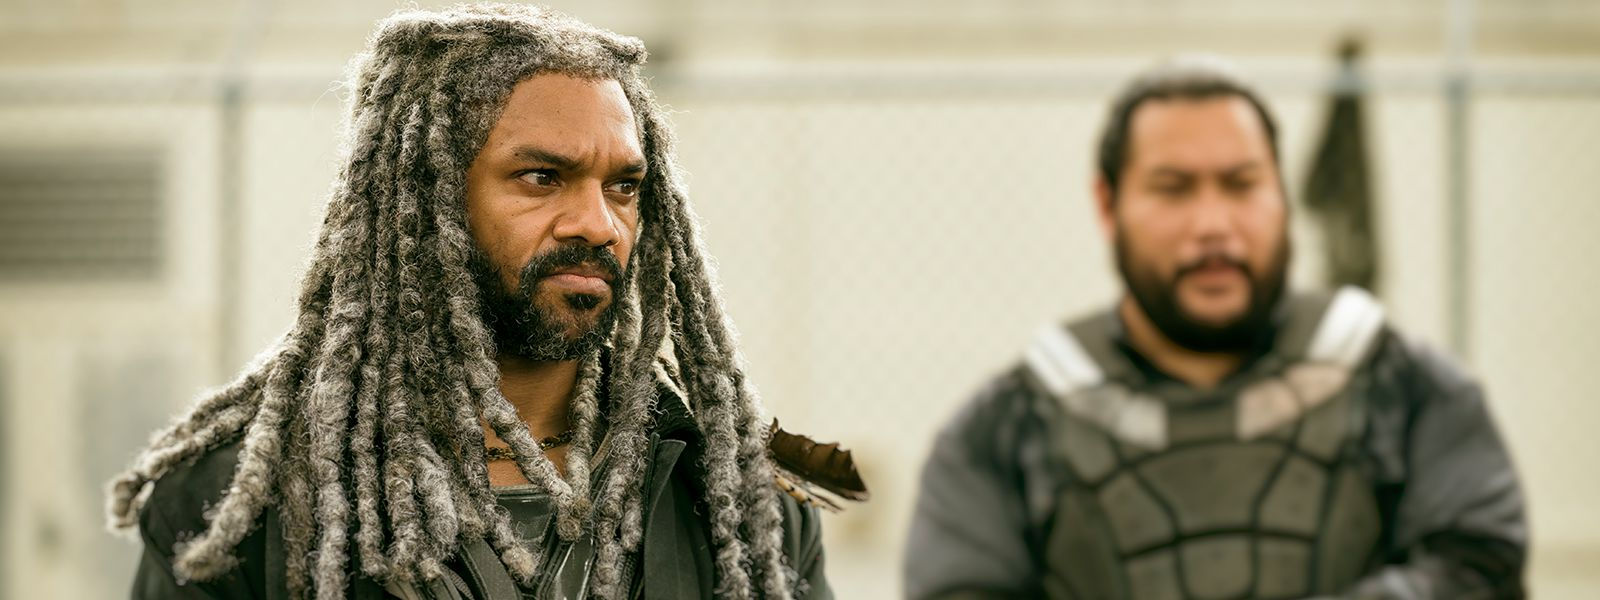 the-walking-dead-episode-702-ezekiel-payton-post-800×600